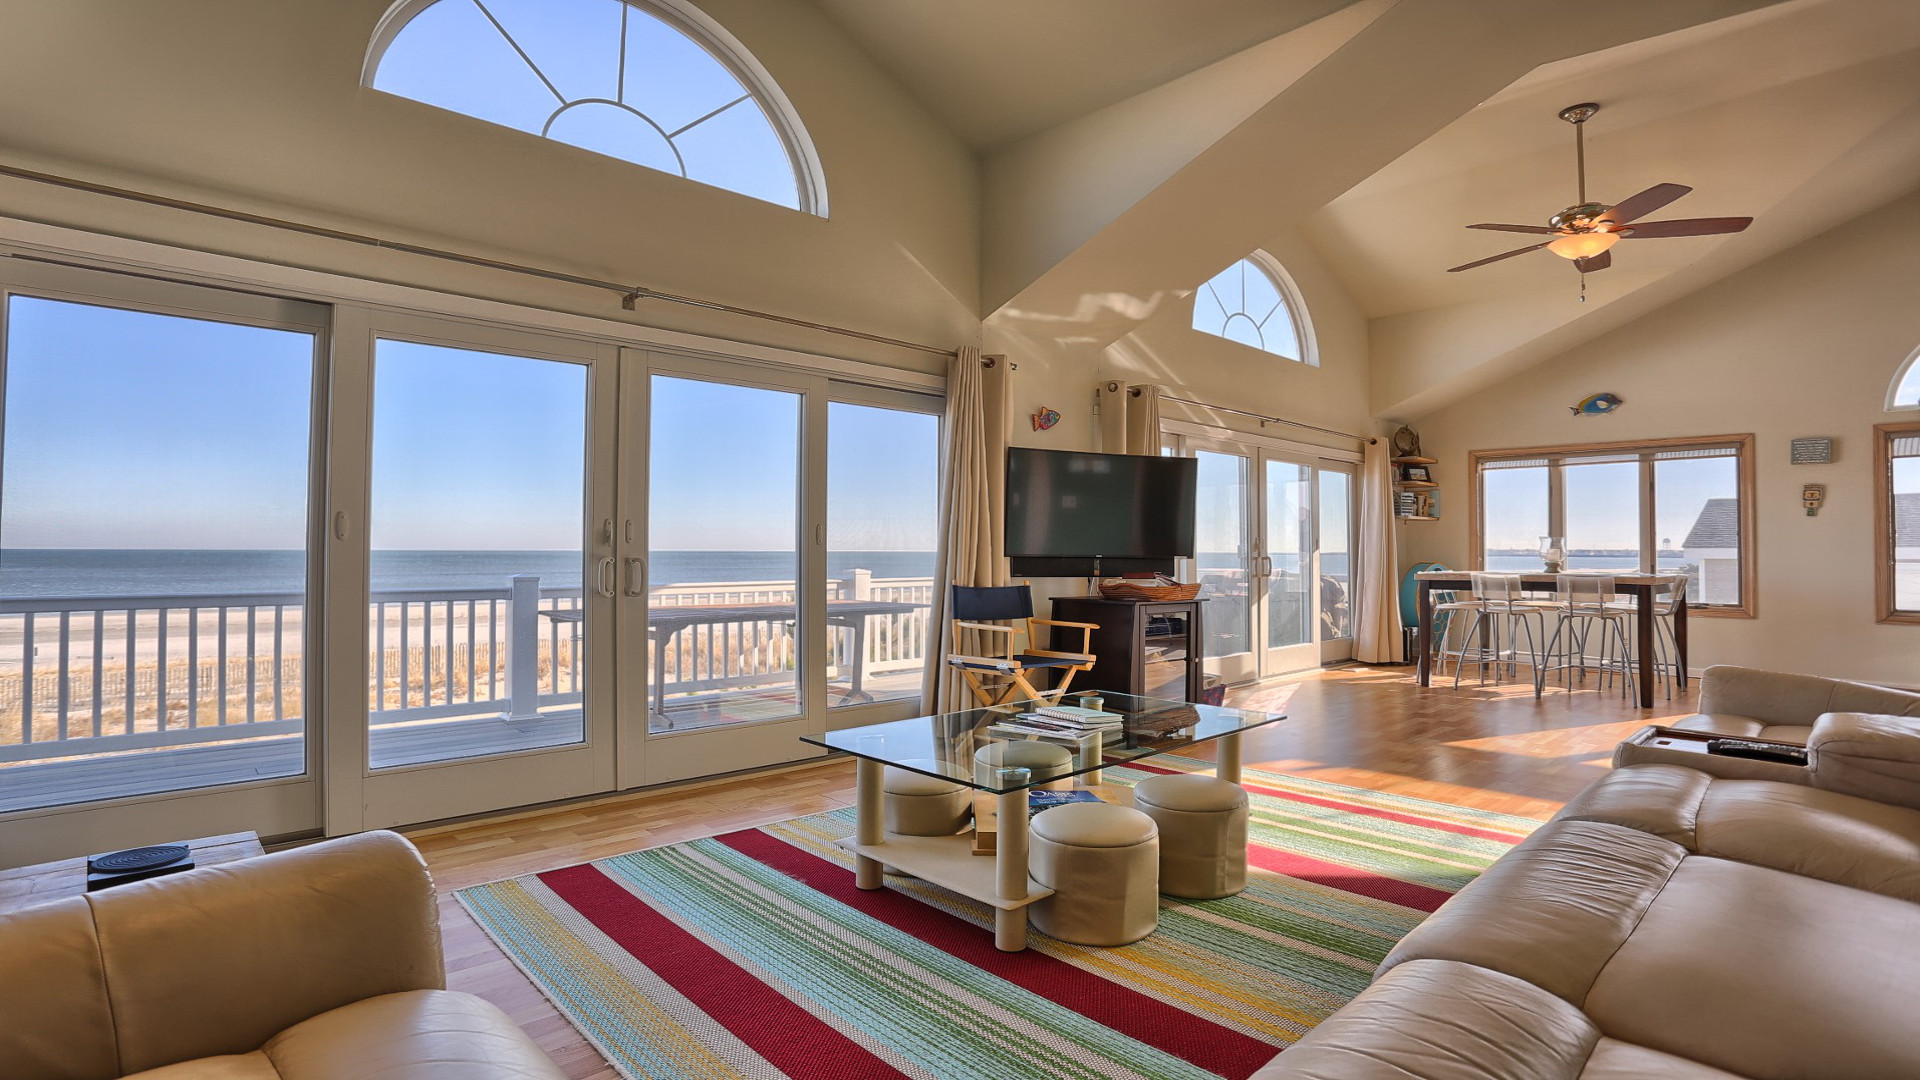 Win A Dream Vacation Week In Sea Isle City Sea Isle News